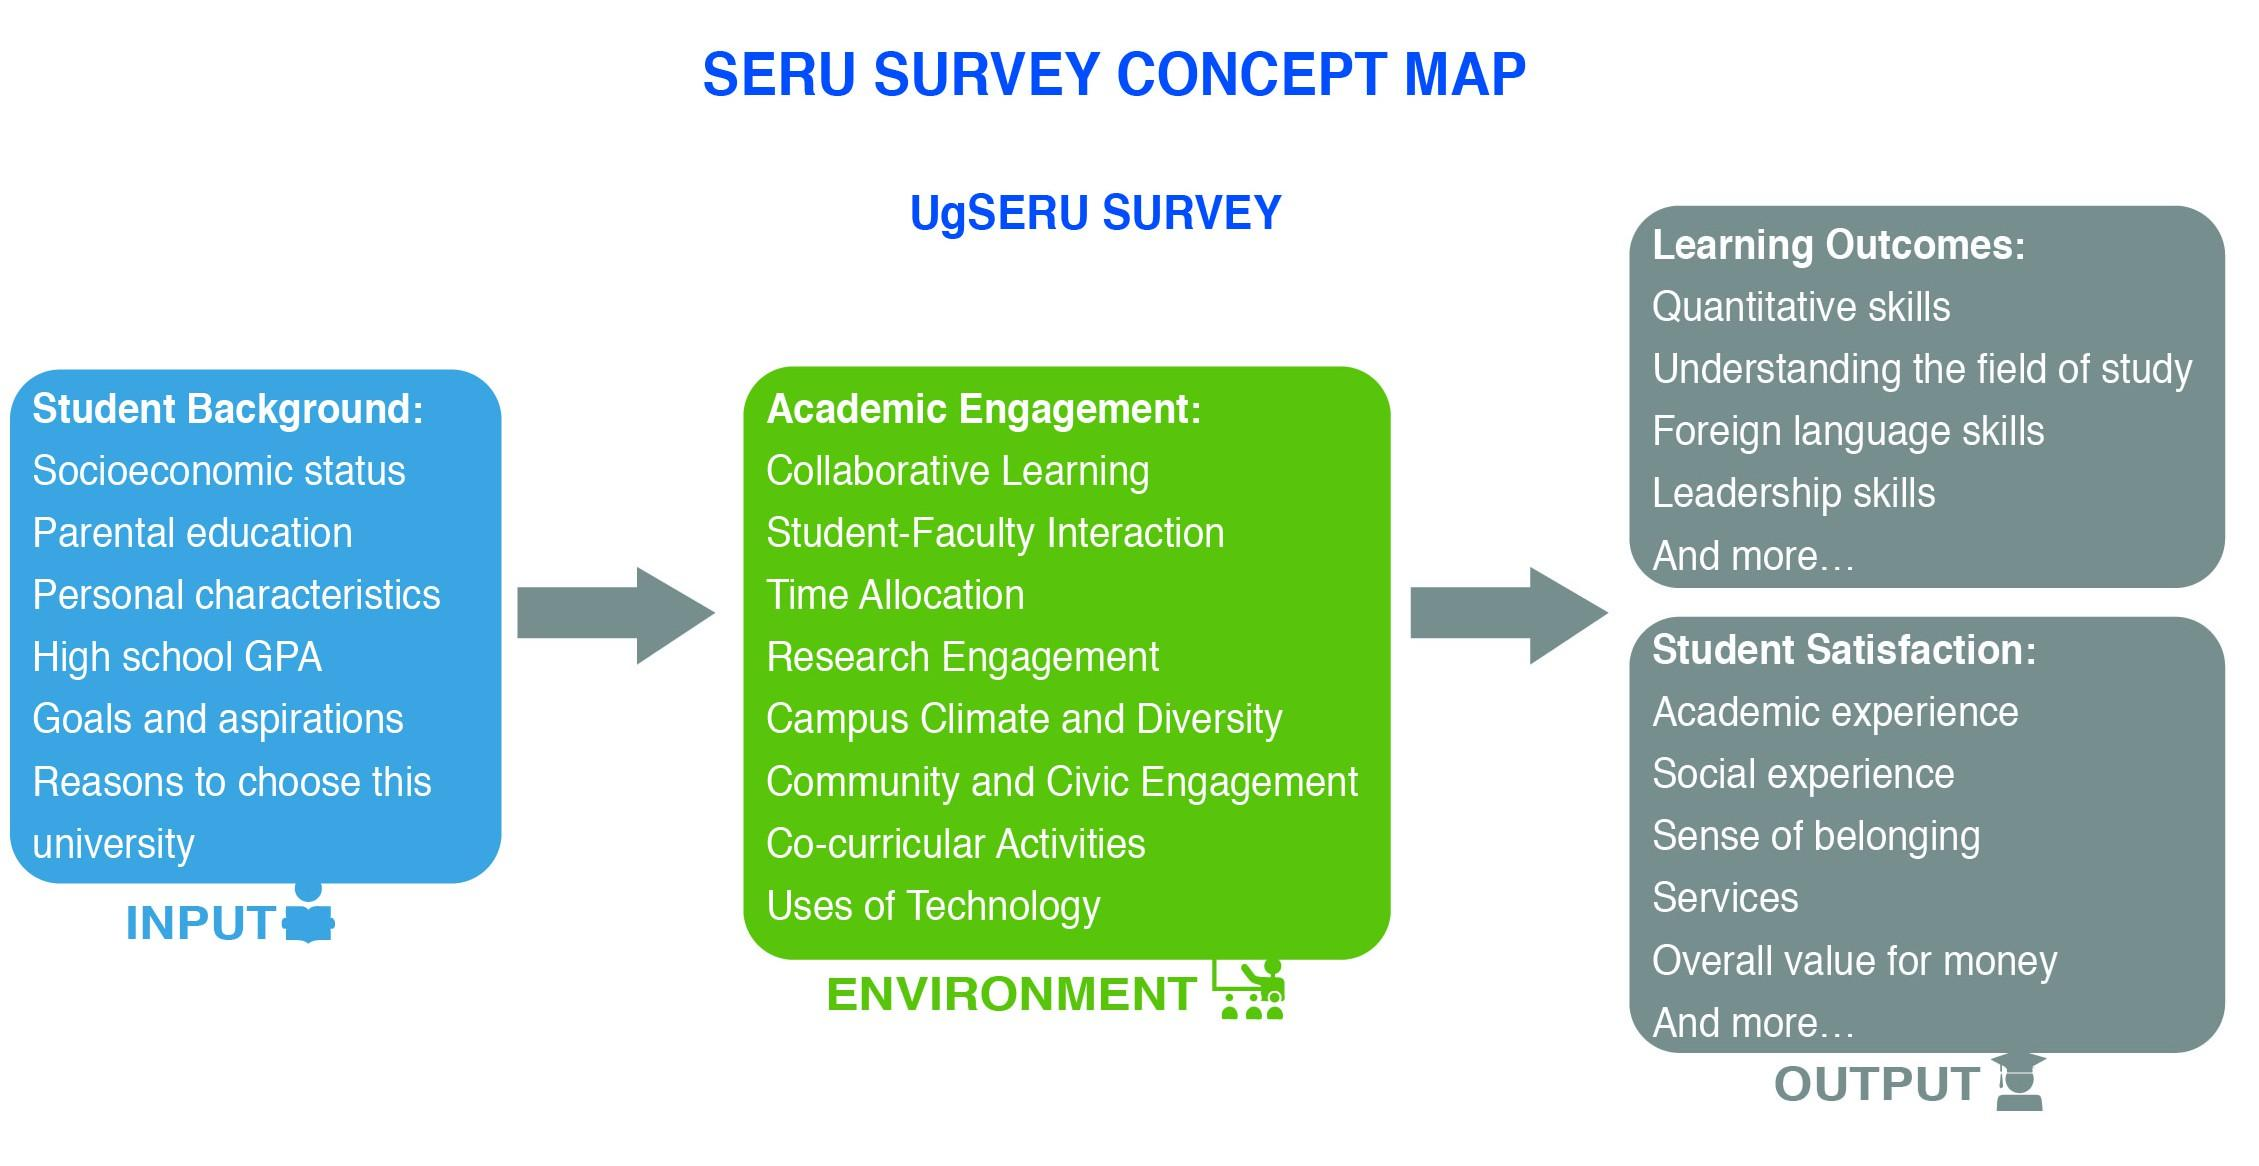 Ugseru Survey Design Center For Studies In Higher Education